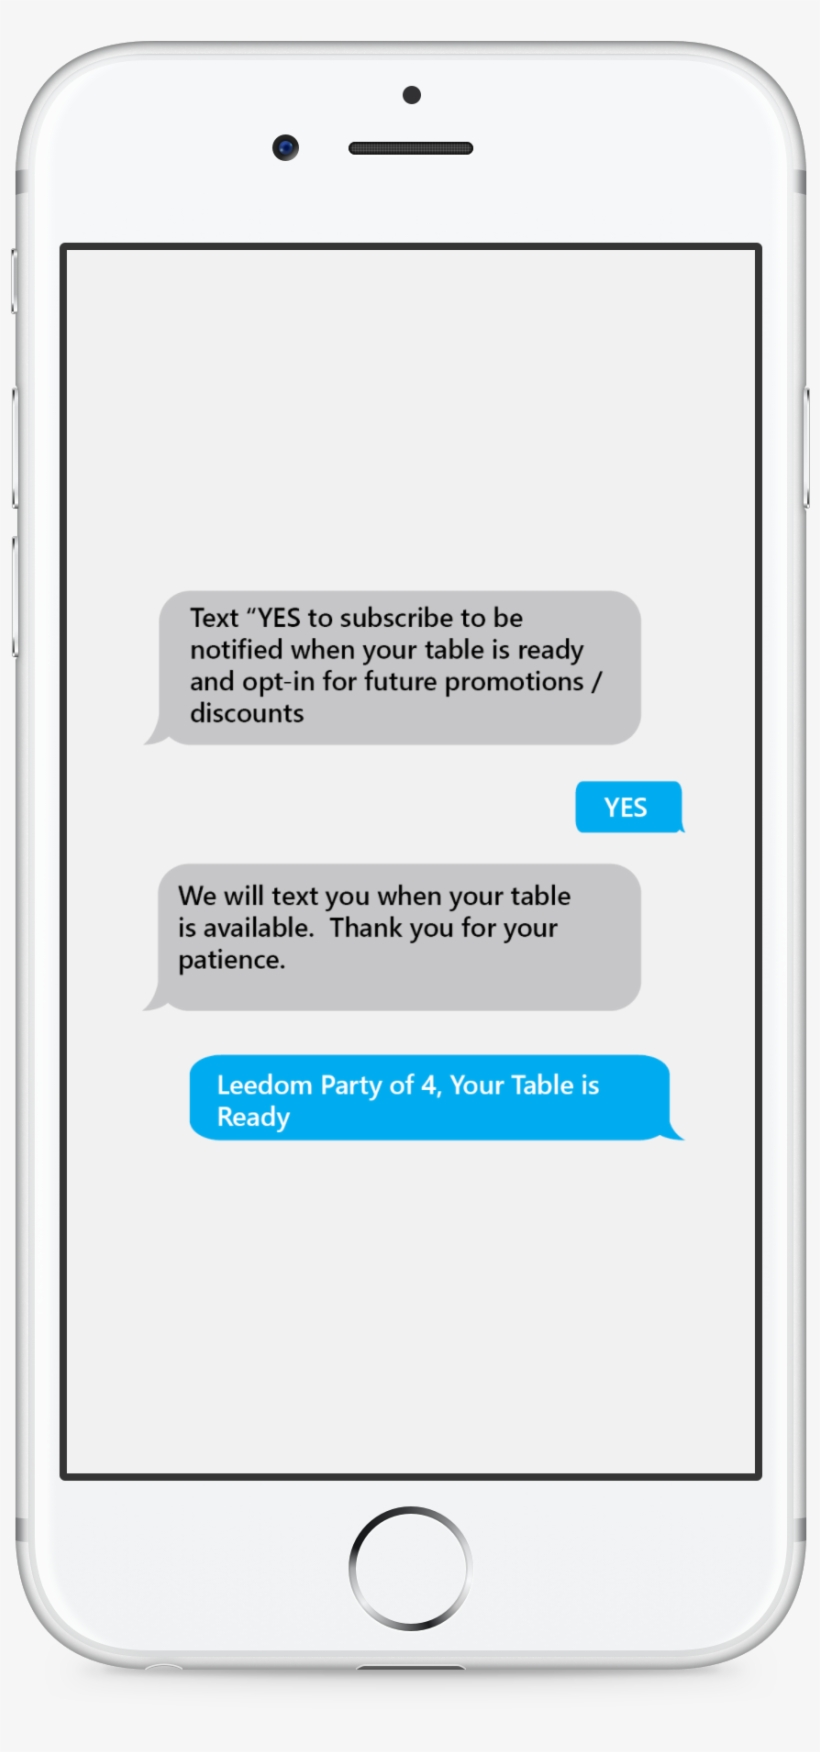 Restaurants & Hospitality Providers - Text Message Your